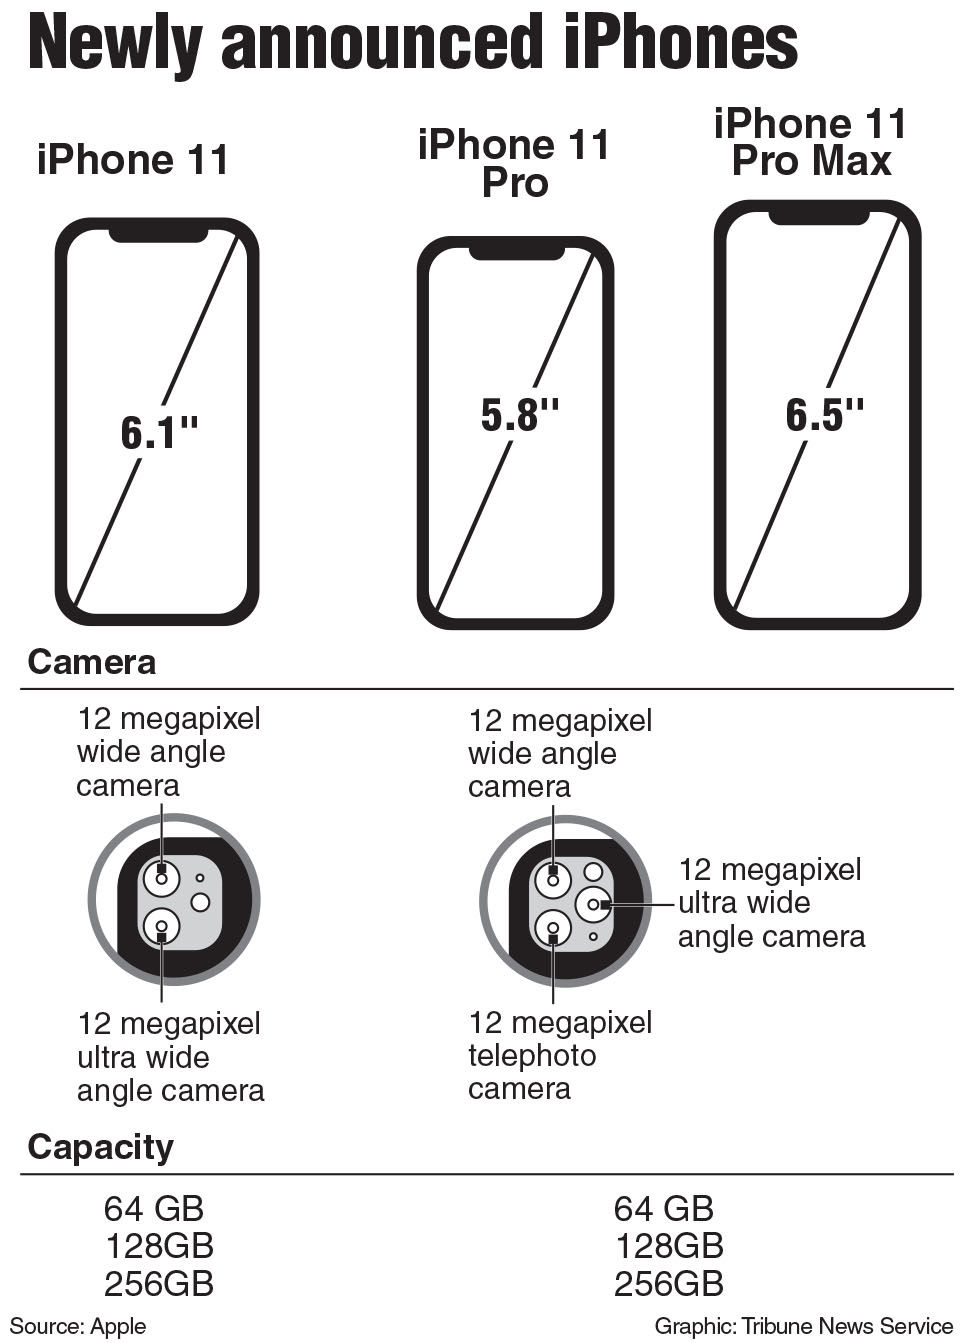 Camera upgrade not worth price of iPhone